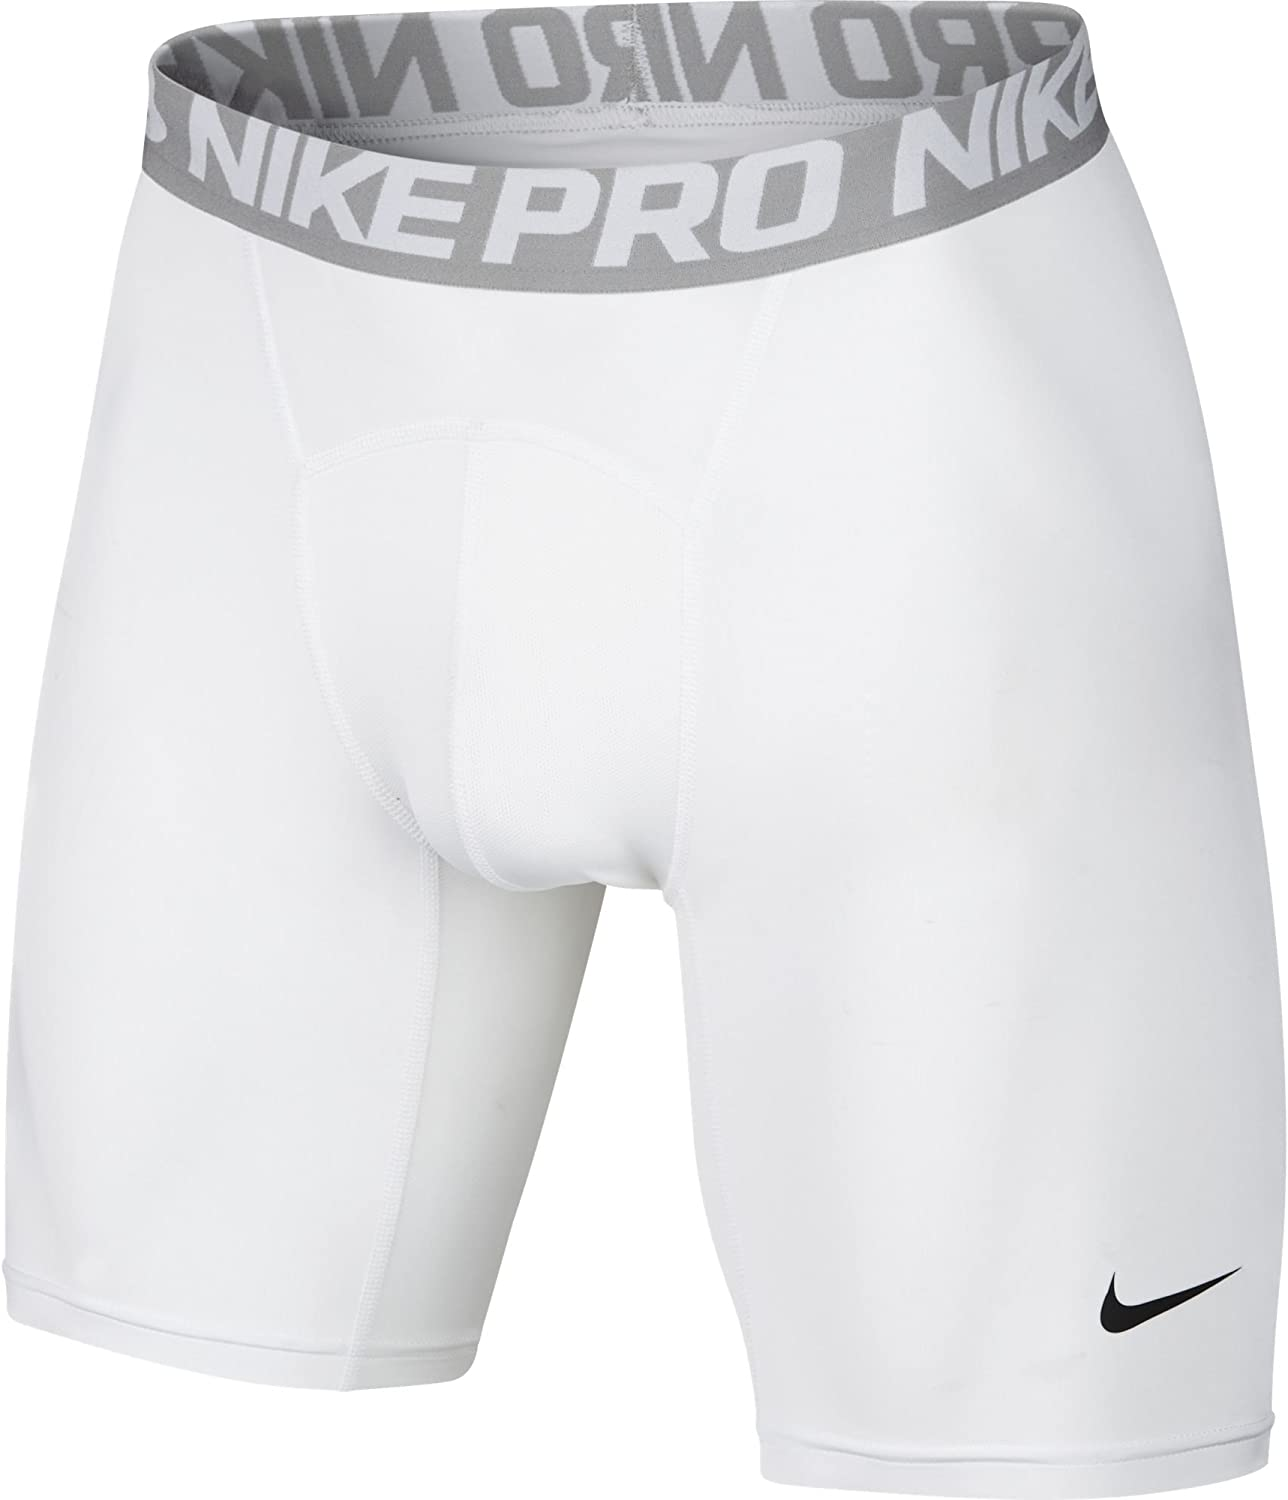 Nike Men's 6 Inch Cool Compression Shorts ,WhiteMatter SilverBlack ,L